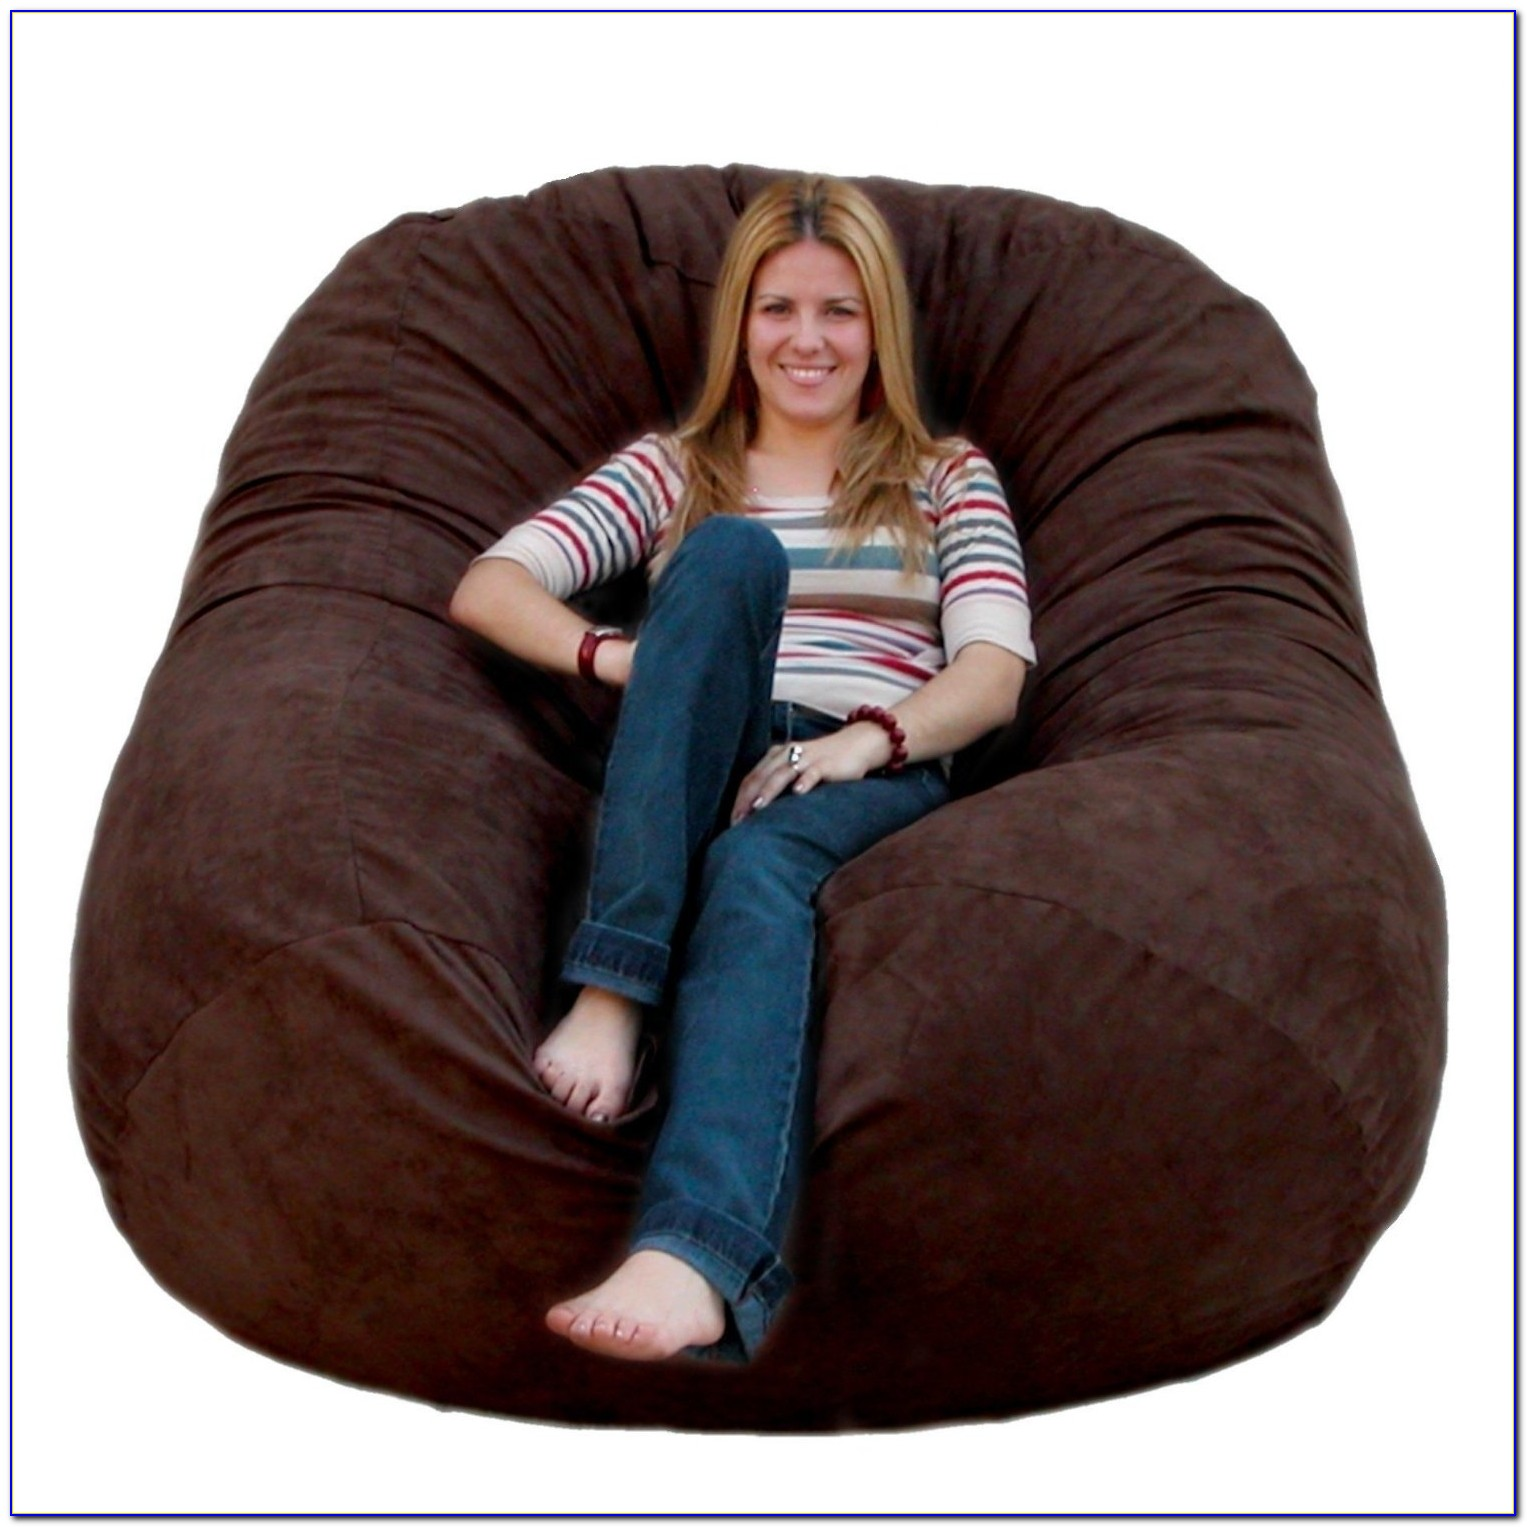 Extra Big Bean Bag Chairs